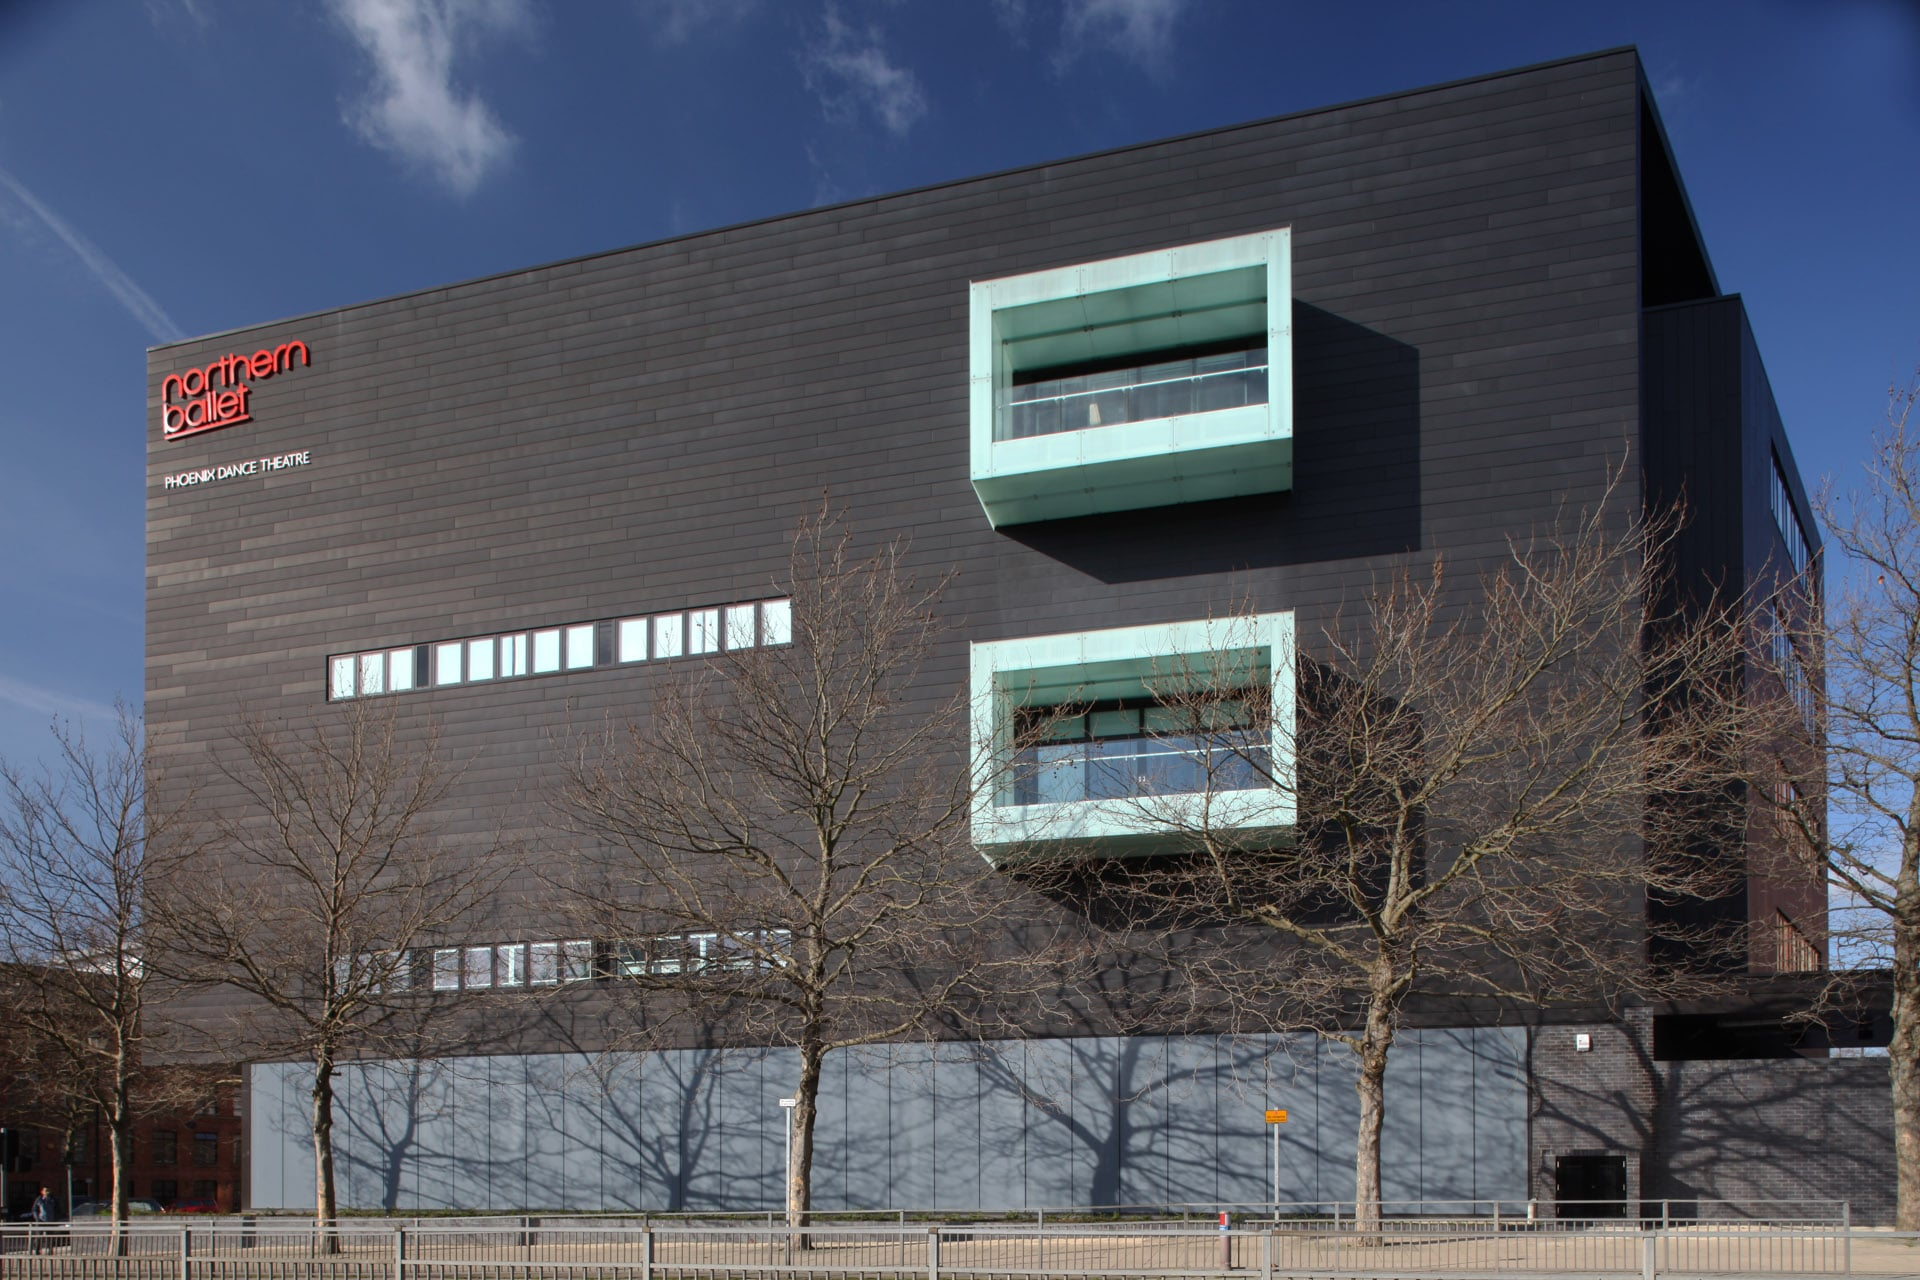 Zinc Rainscreen Cladding - Northern Ballet